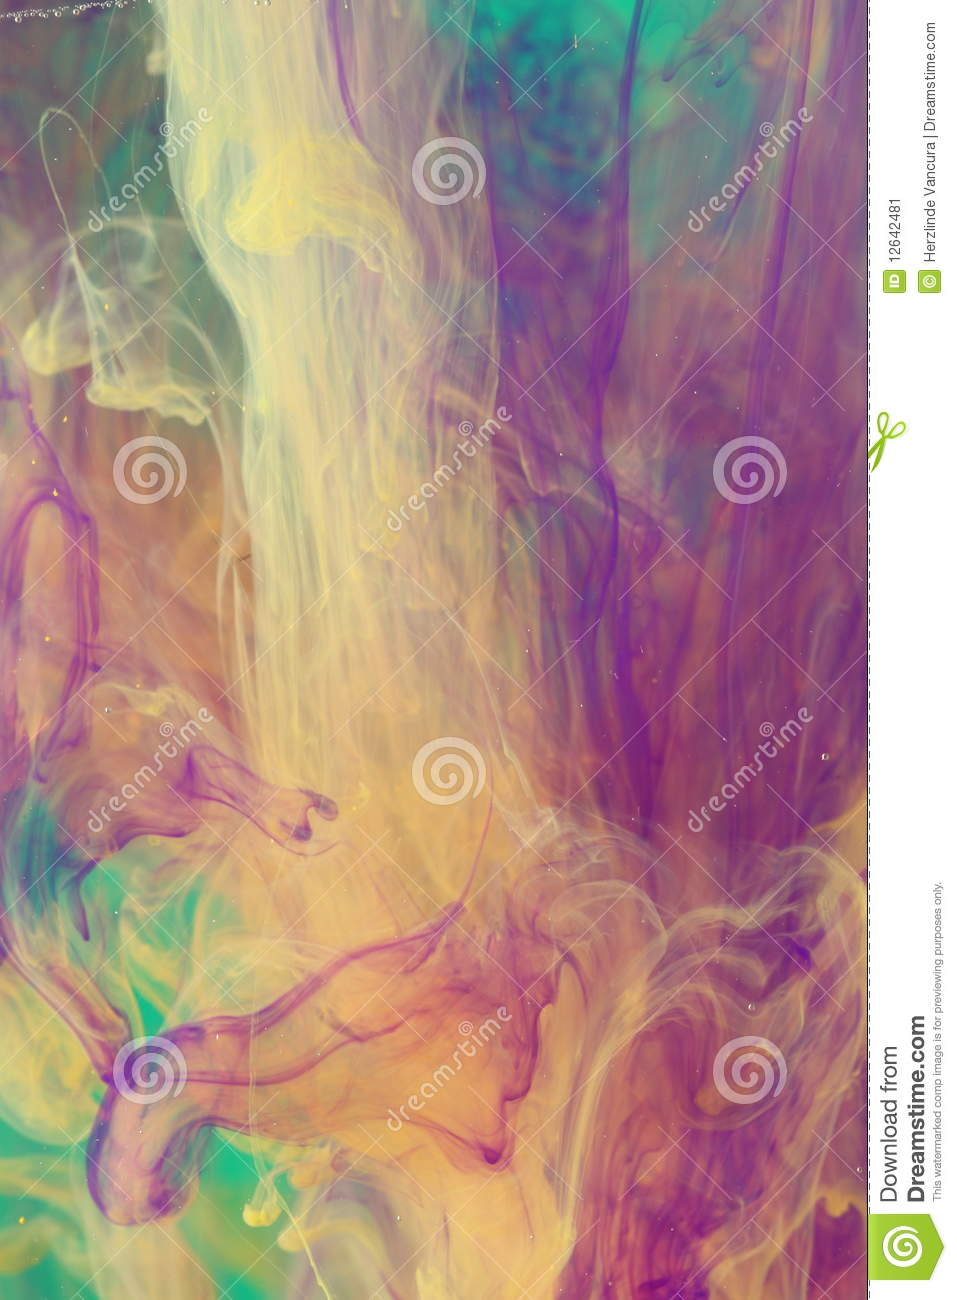 Airbrush Art Stock Image Image Of Artistic Colorful 12642481